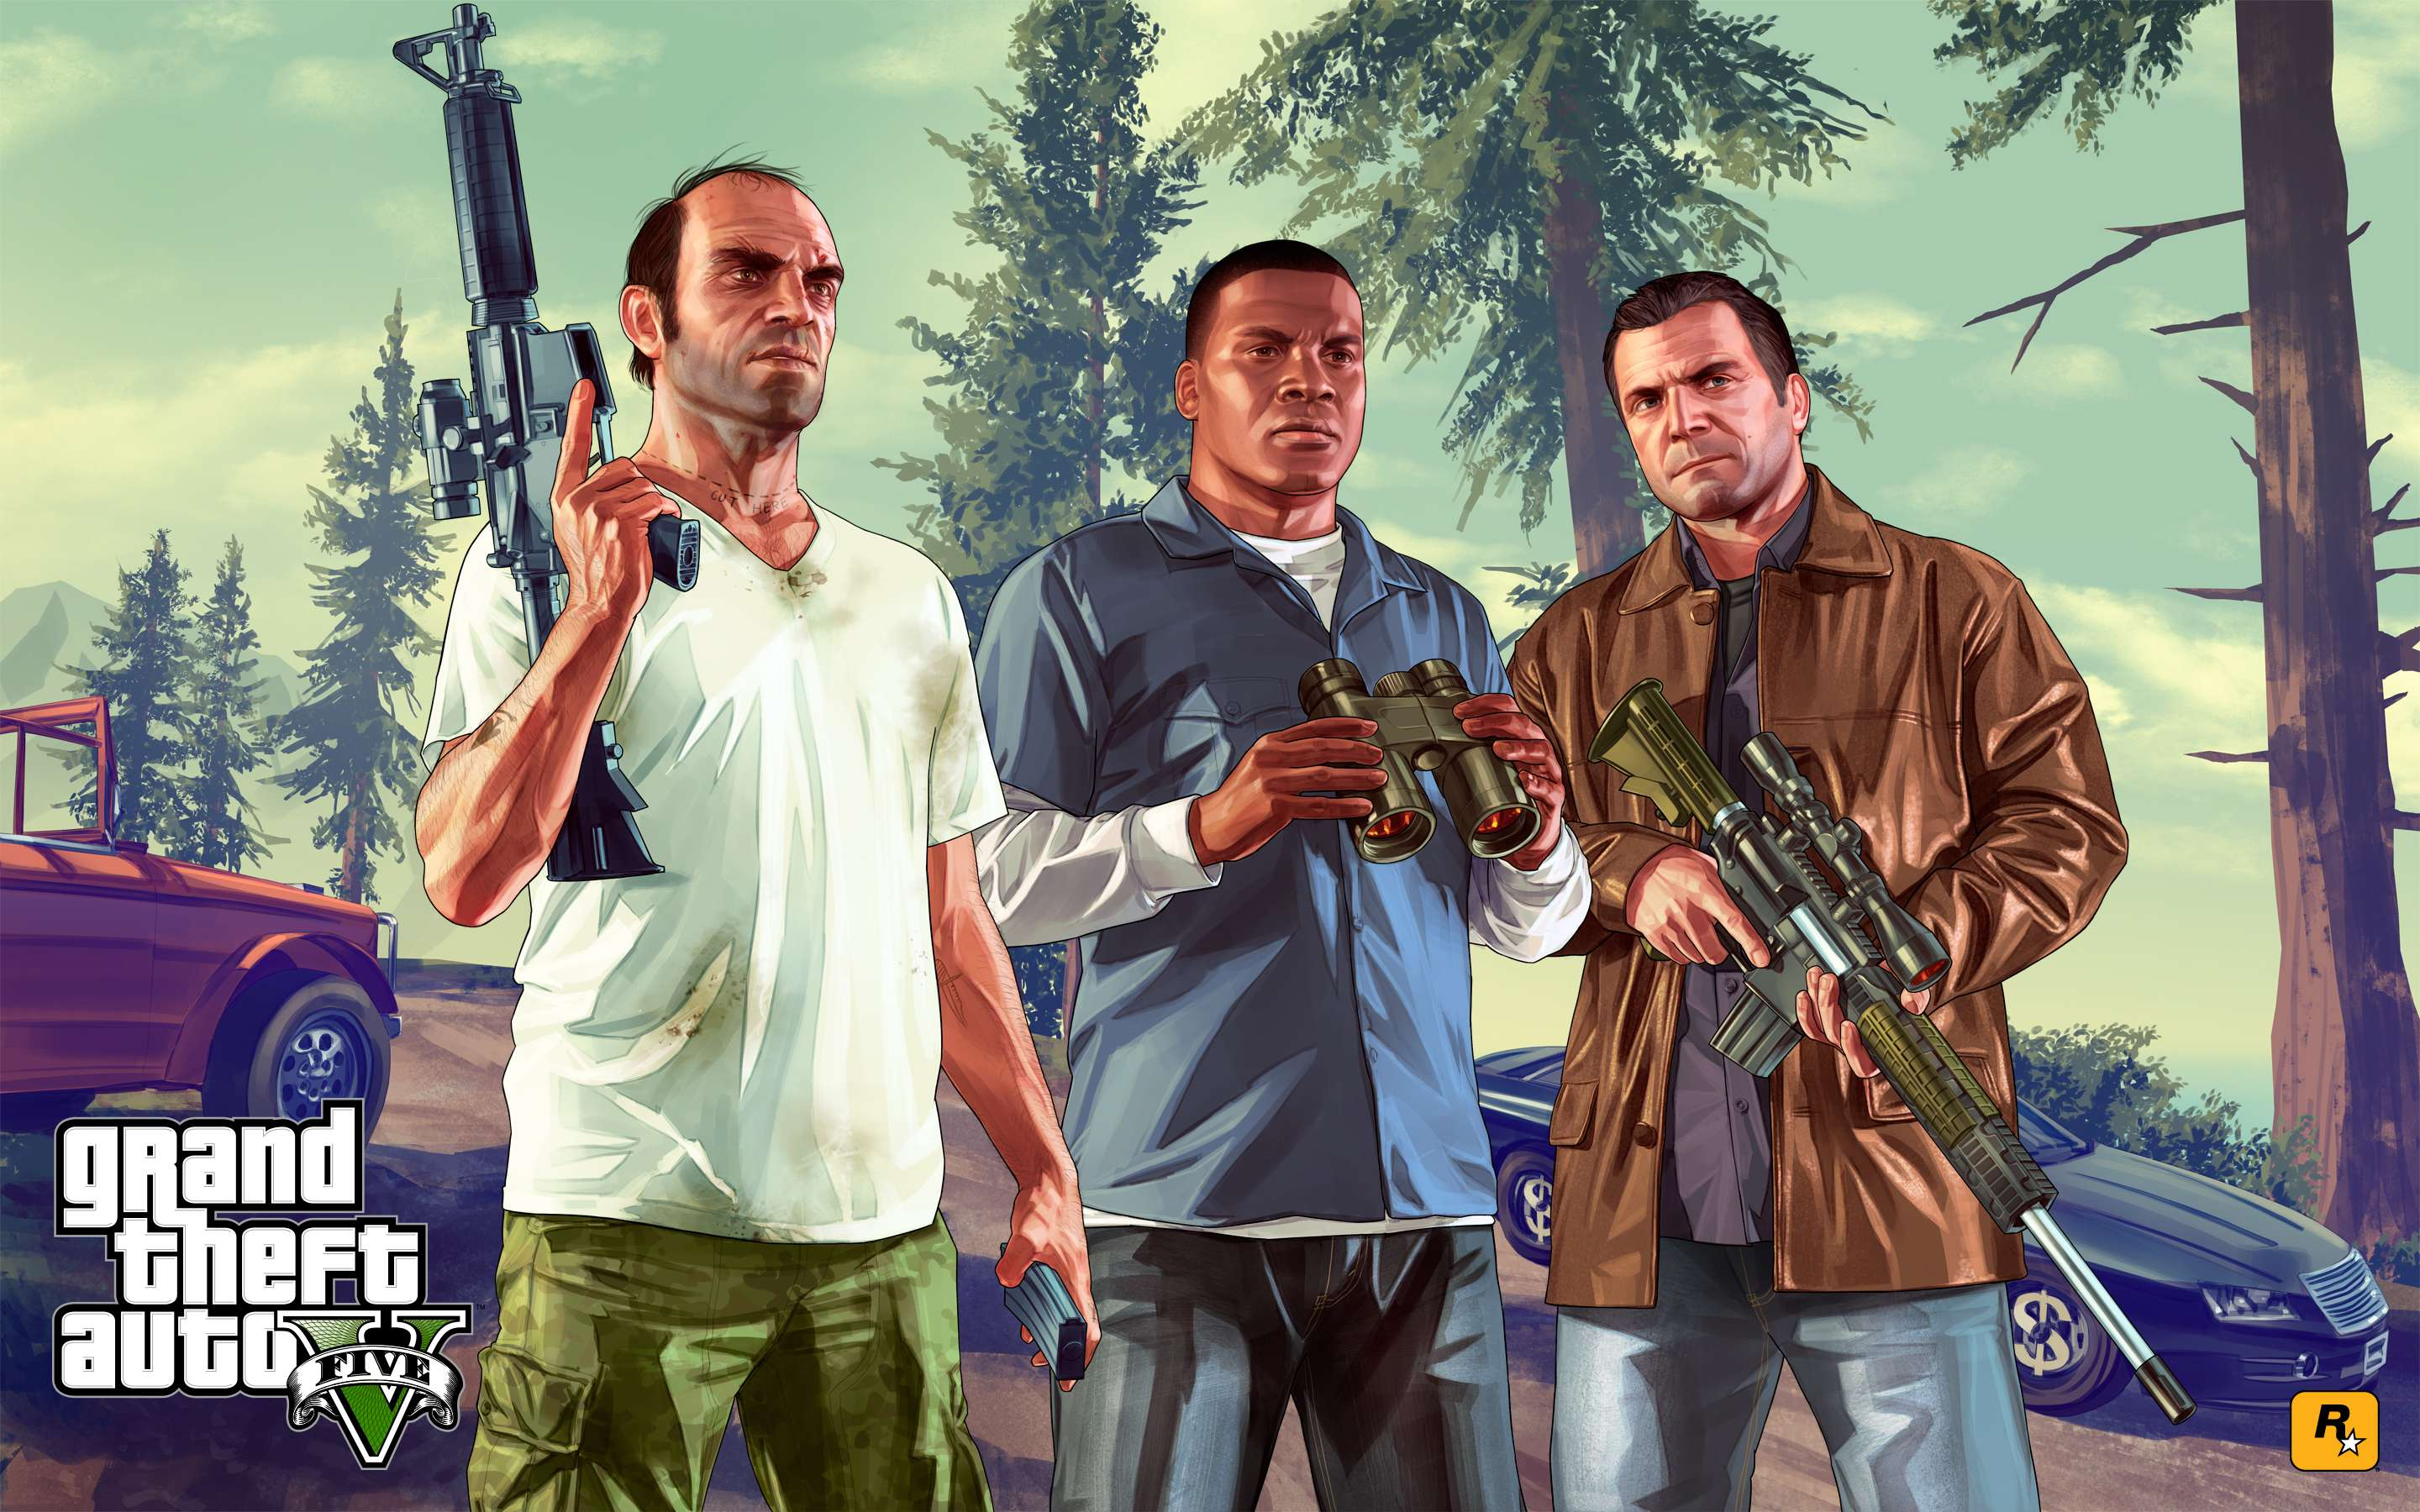 GTA 5 For Android and iOS - Mobile Download